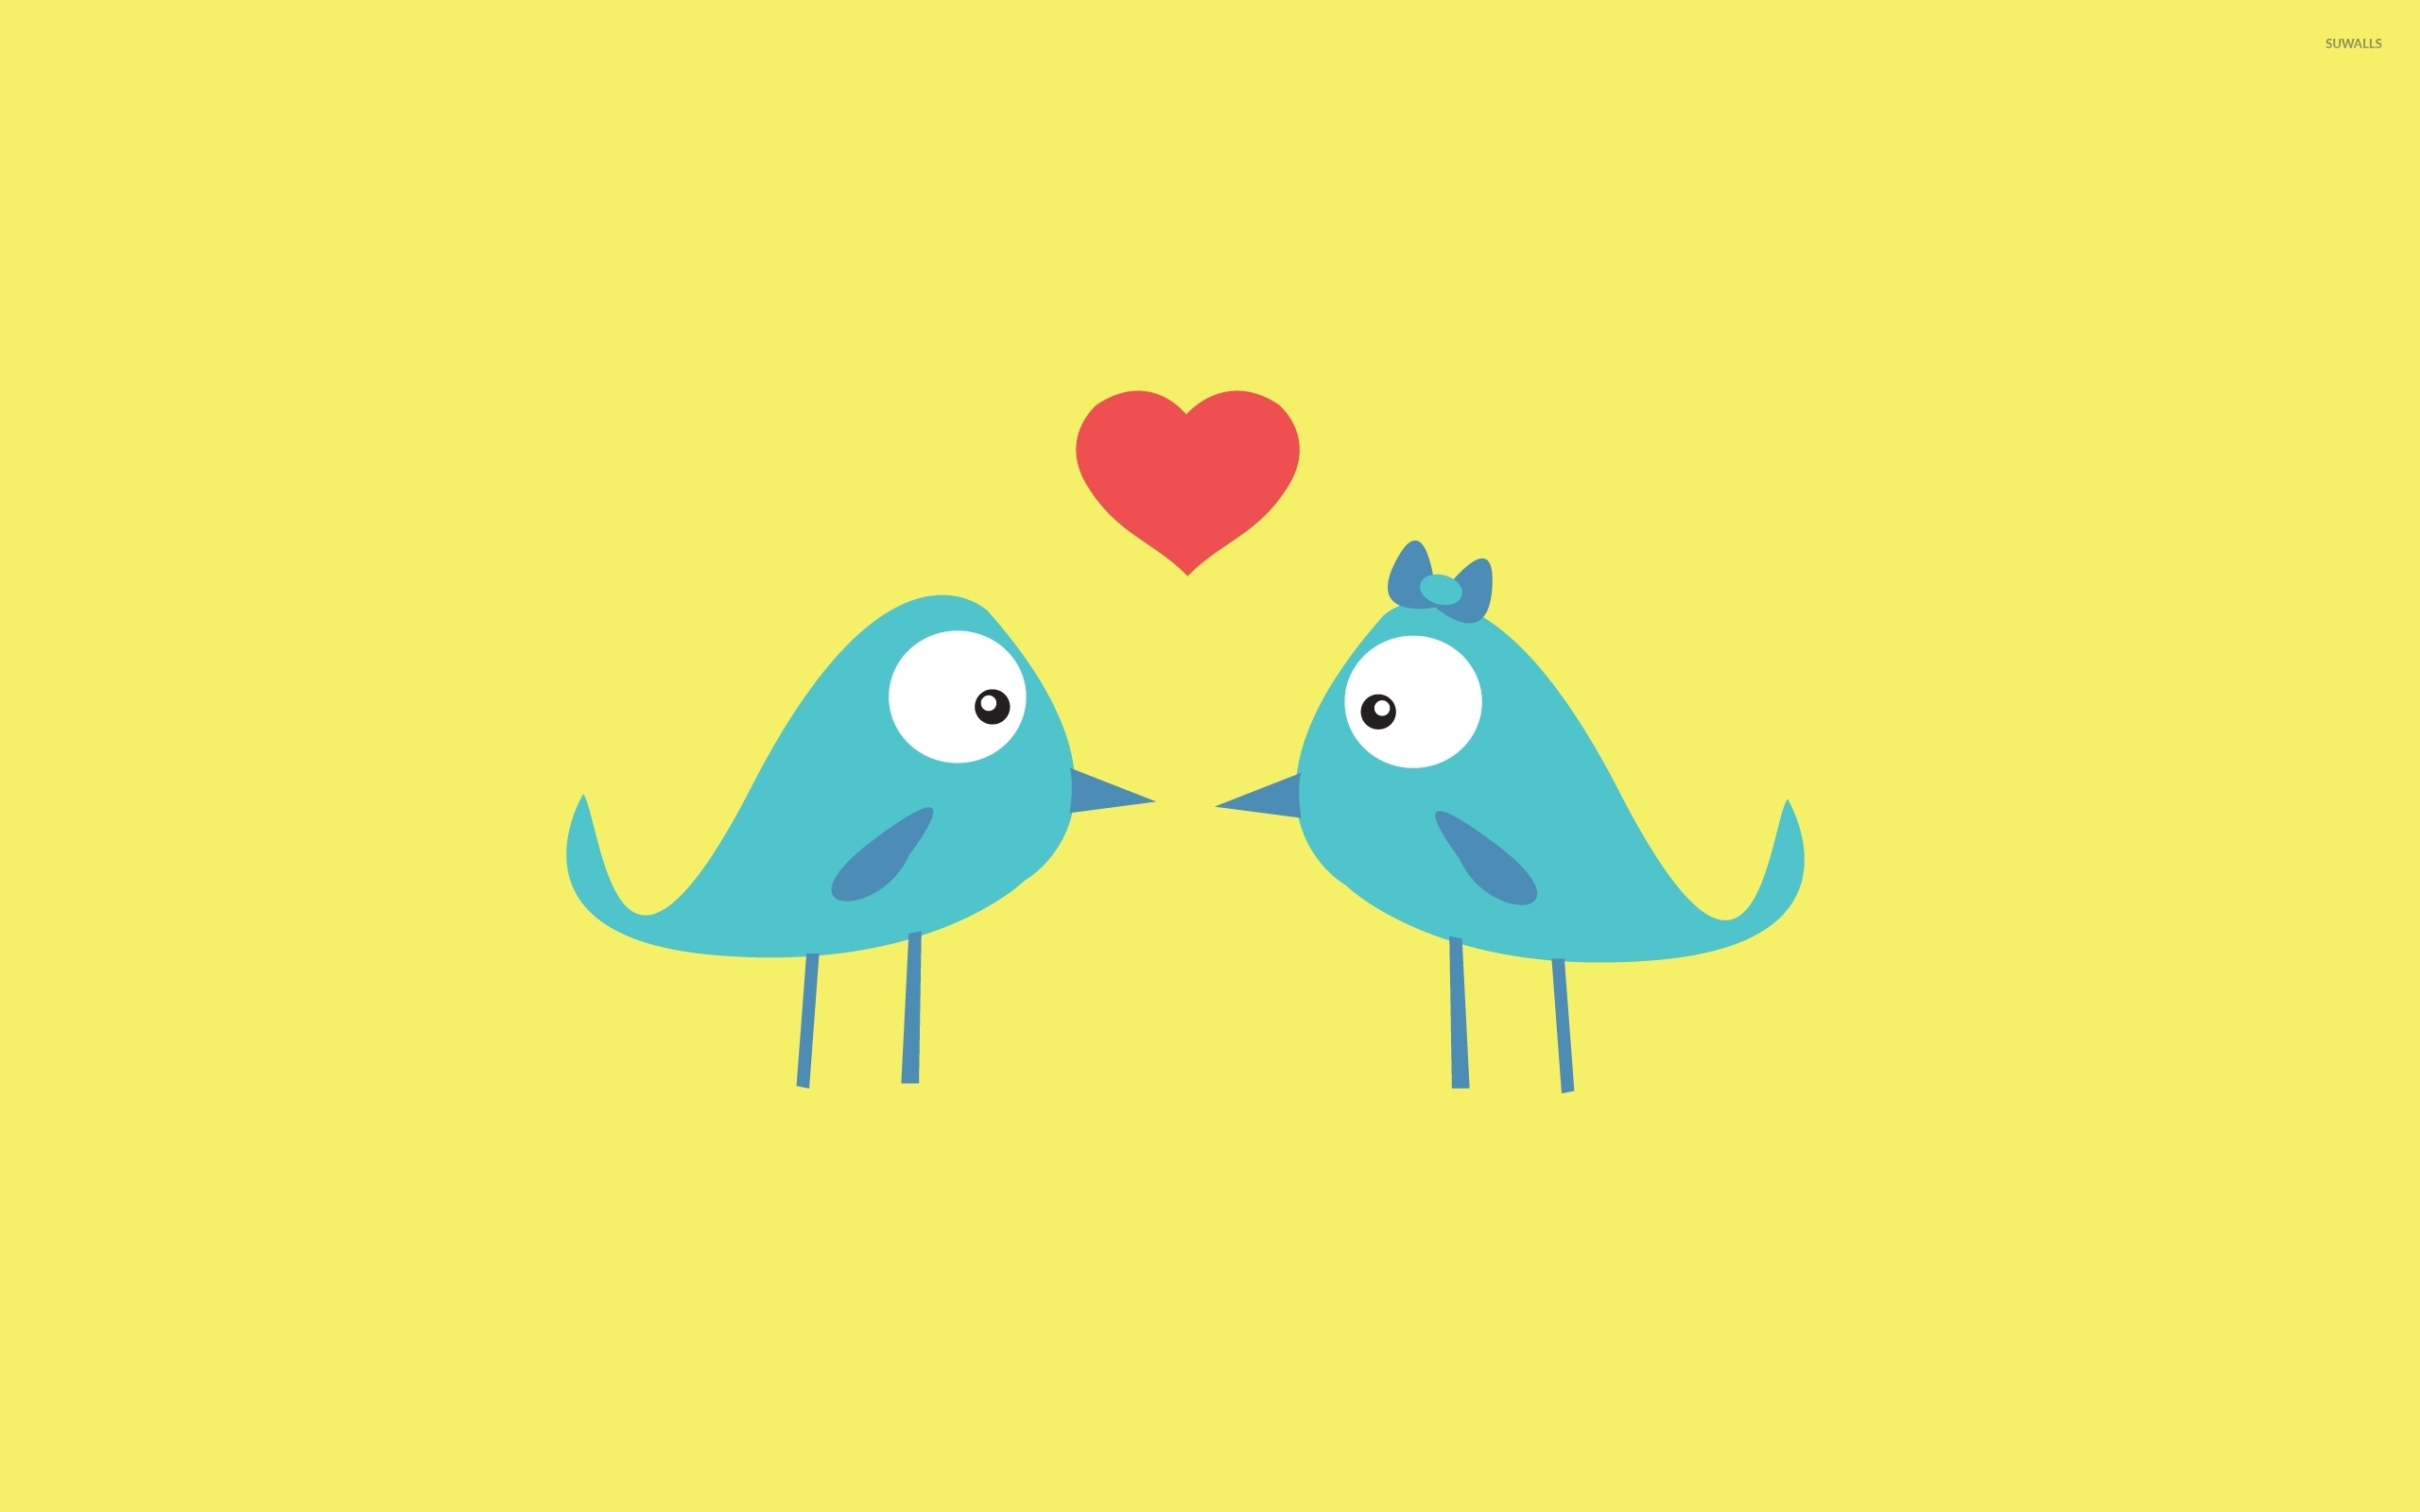 Love Wallpapers Vector : Blue bird love wallpaper - Vector wallpapers - #43152